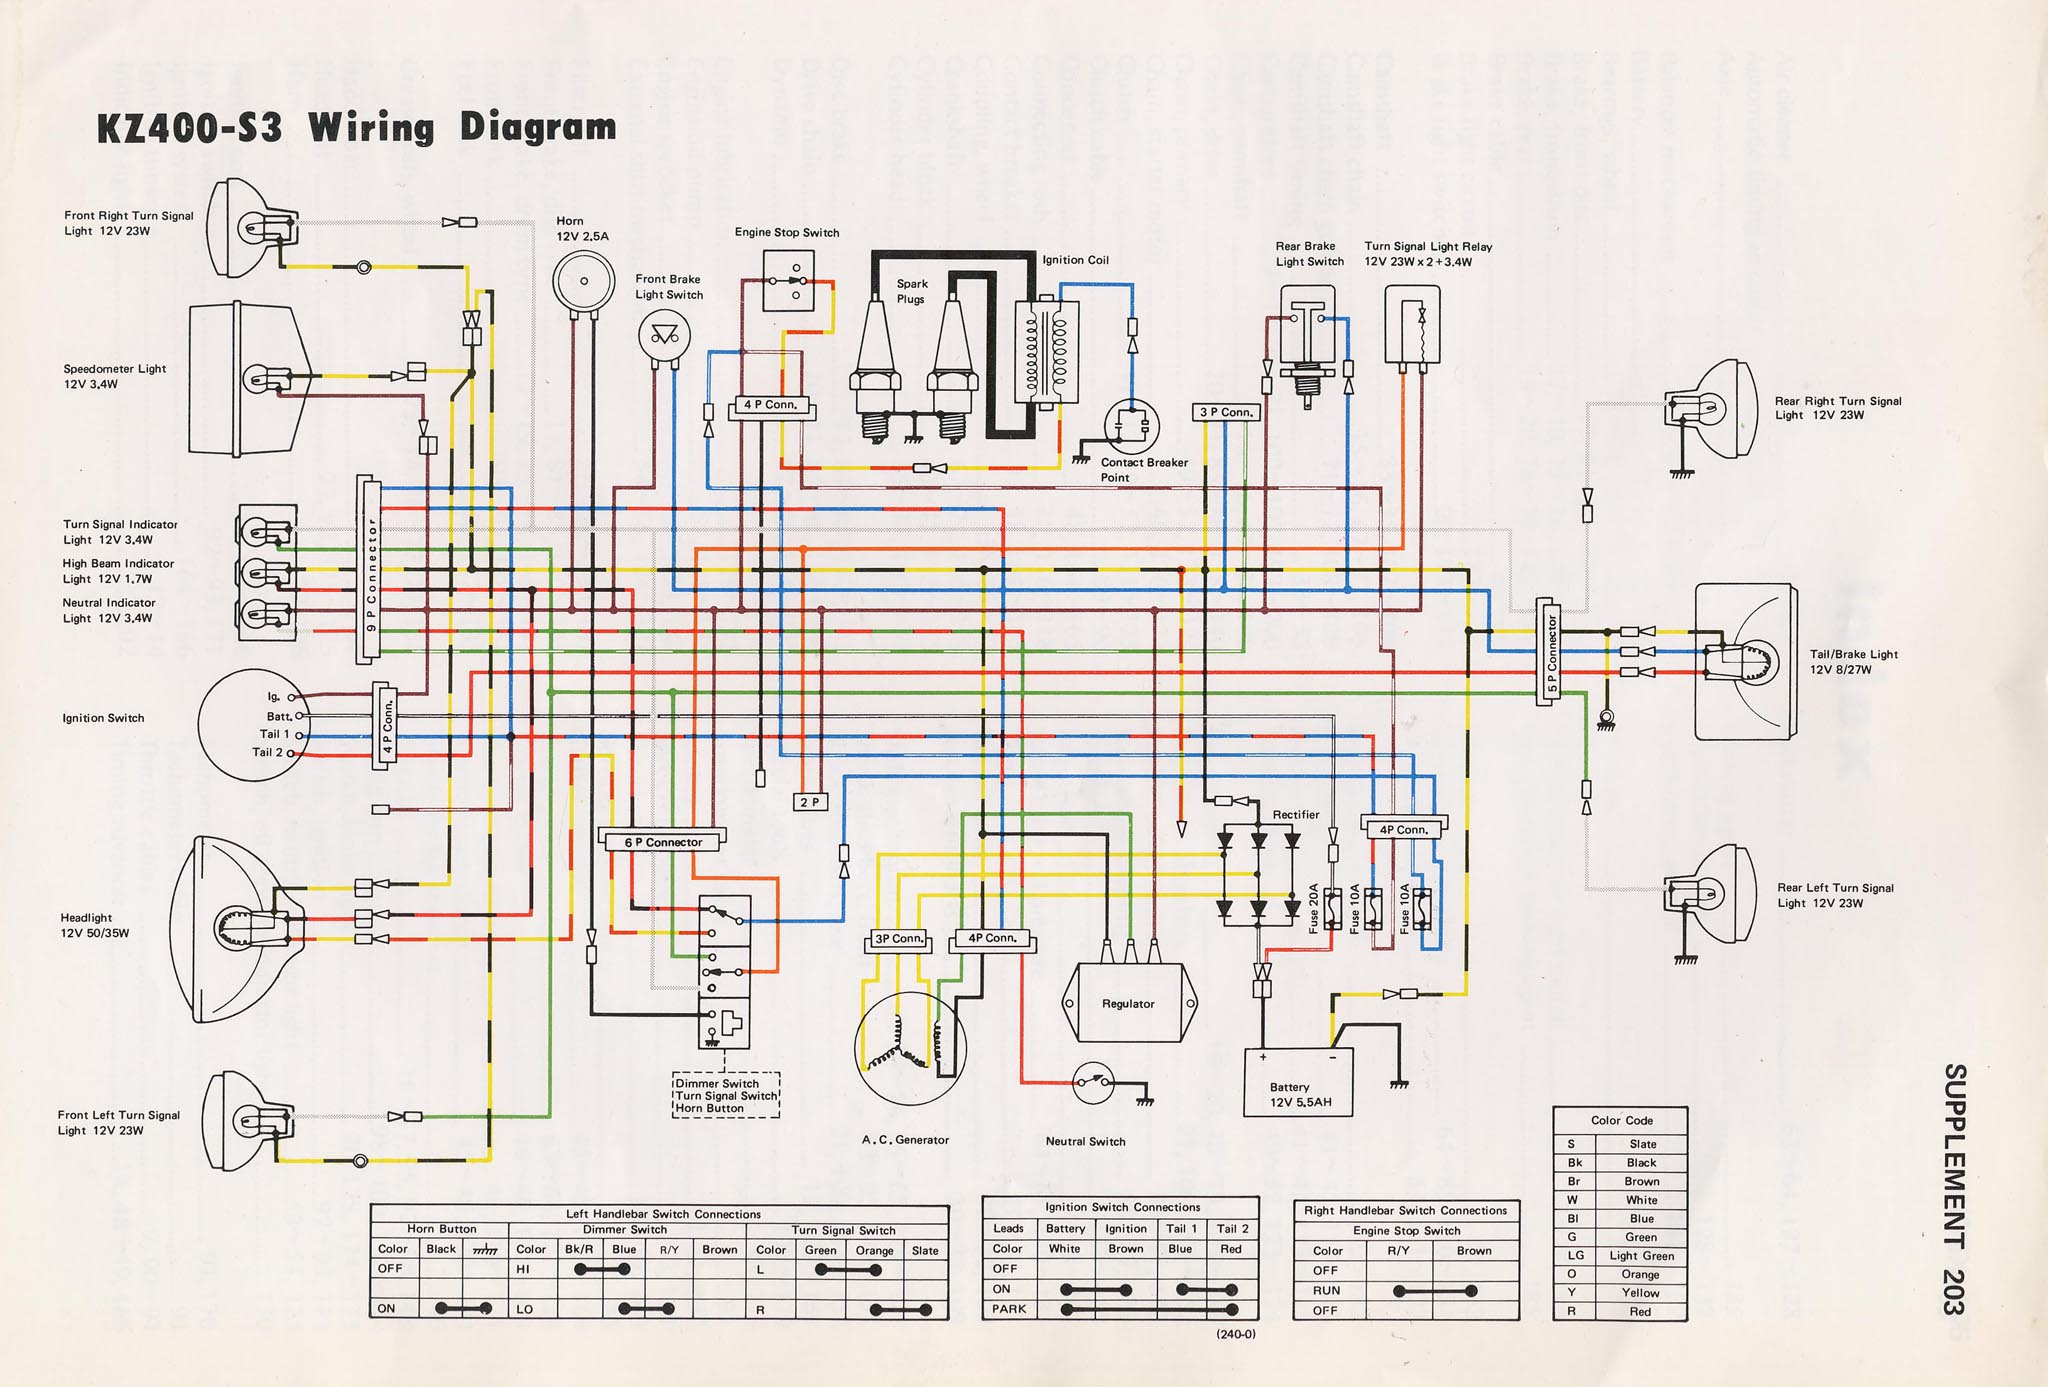 Vintage Kawasaki Motorcycle Wire Diagram Wiring Motorcycles